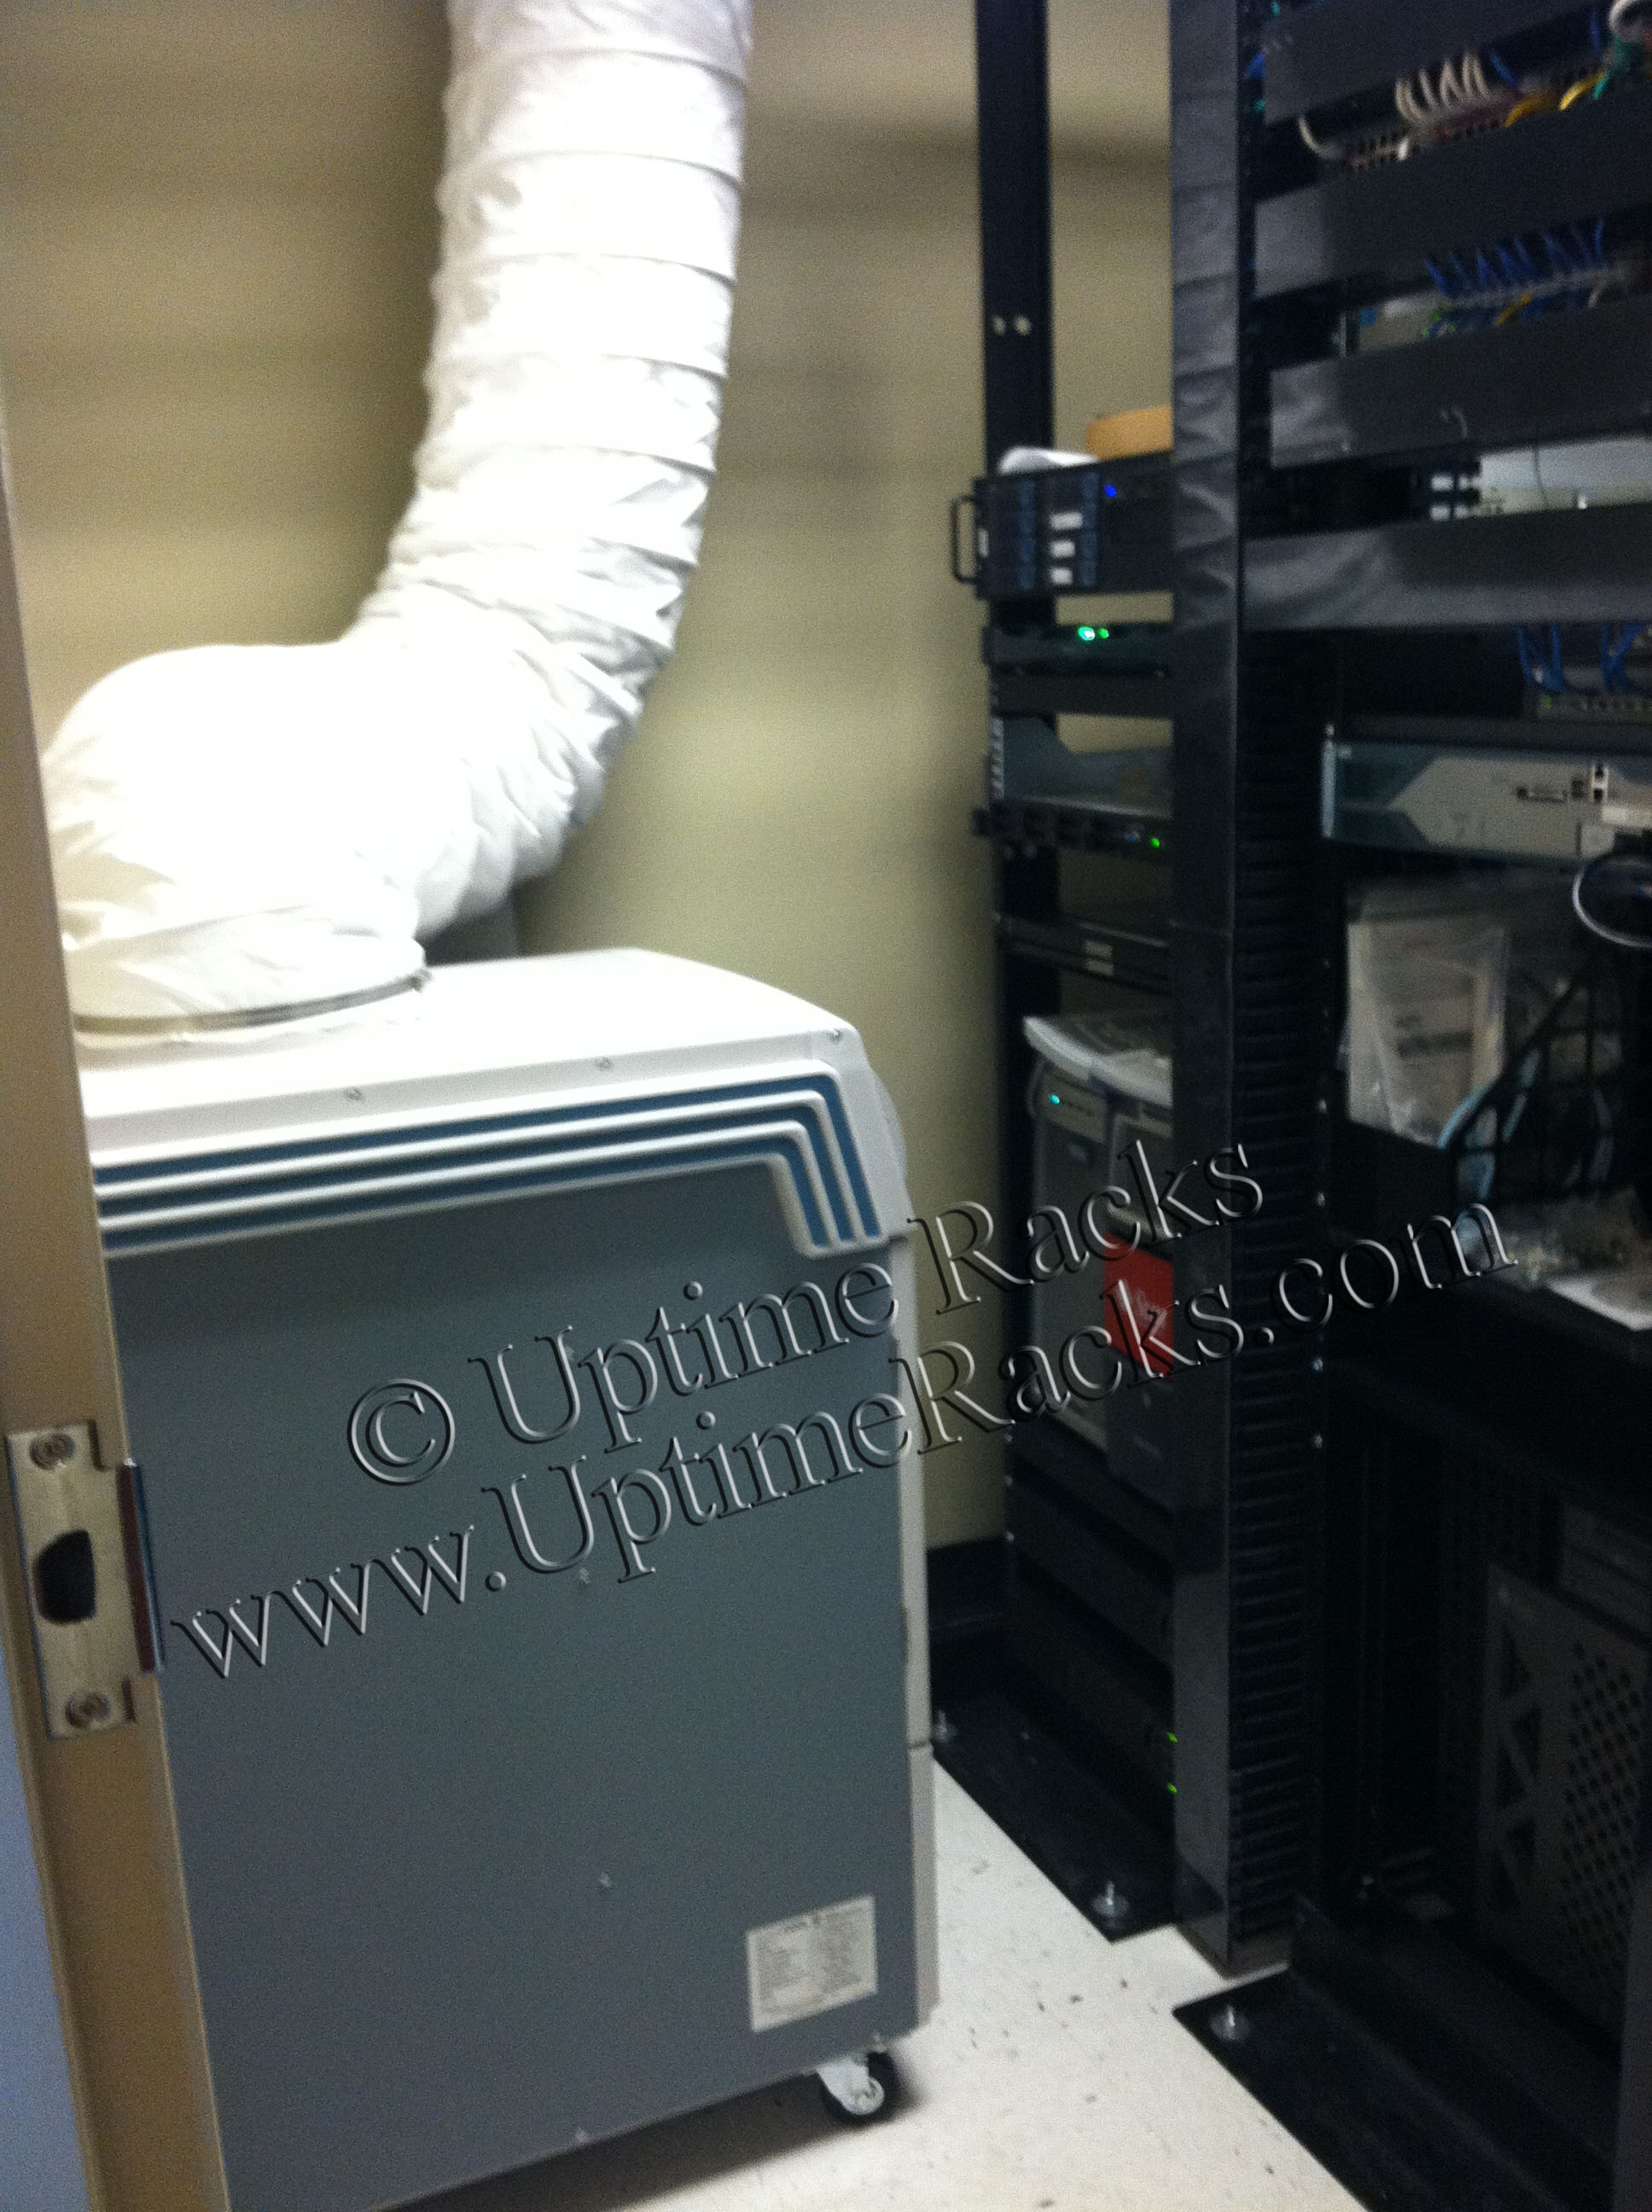 Air Conditioners For Small Rooms Data Centers Are Shrinking - Call in the Air Conditioned ...